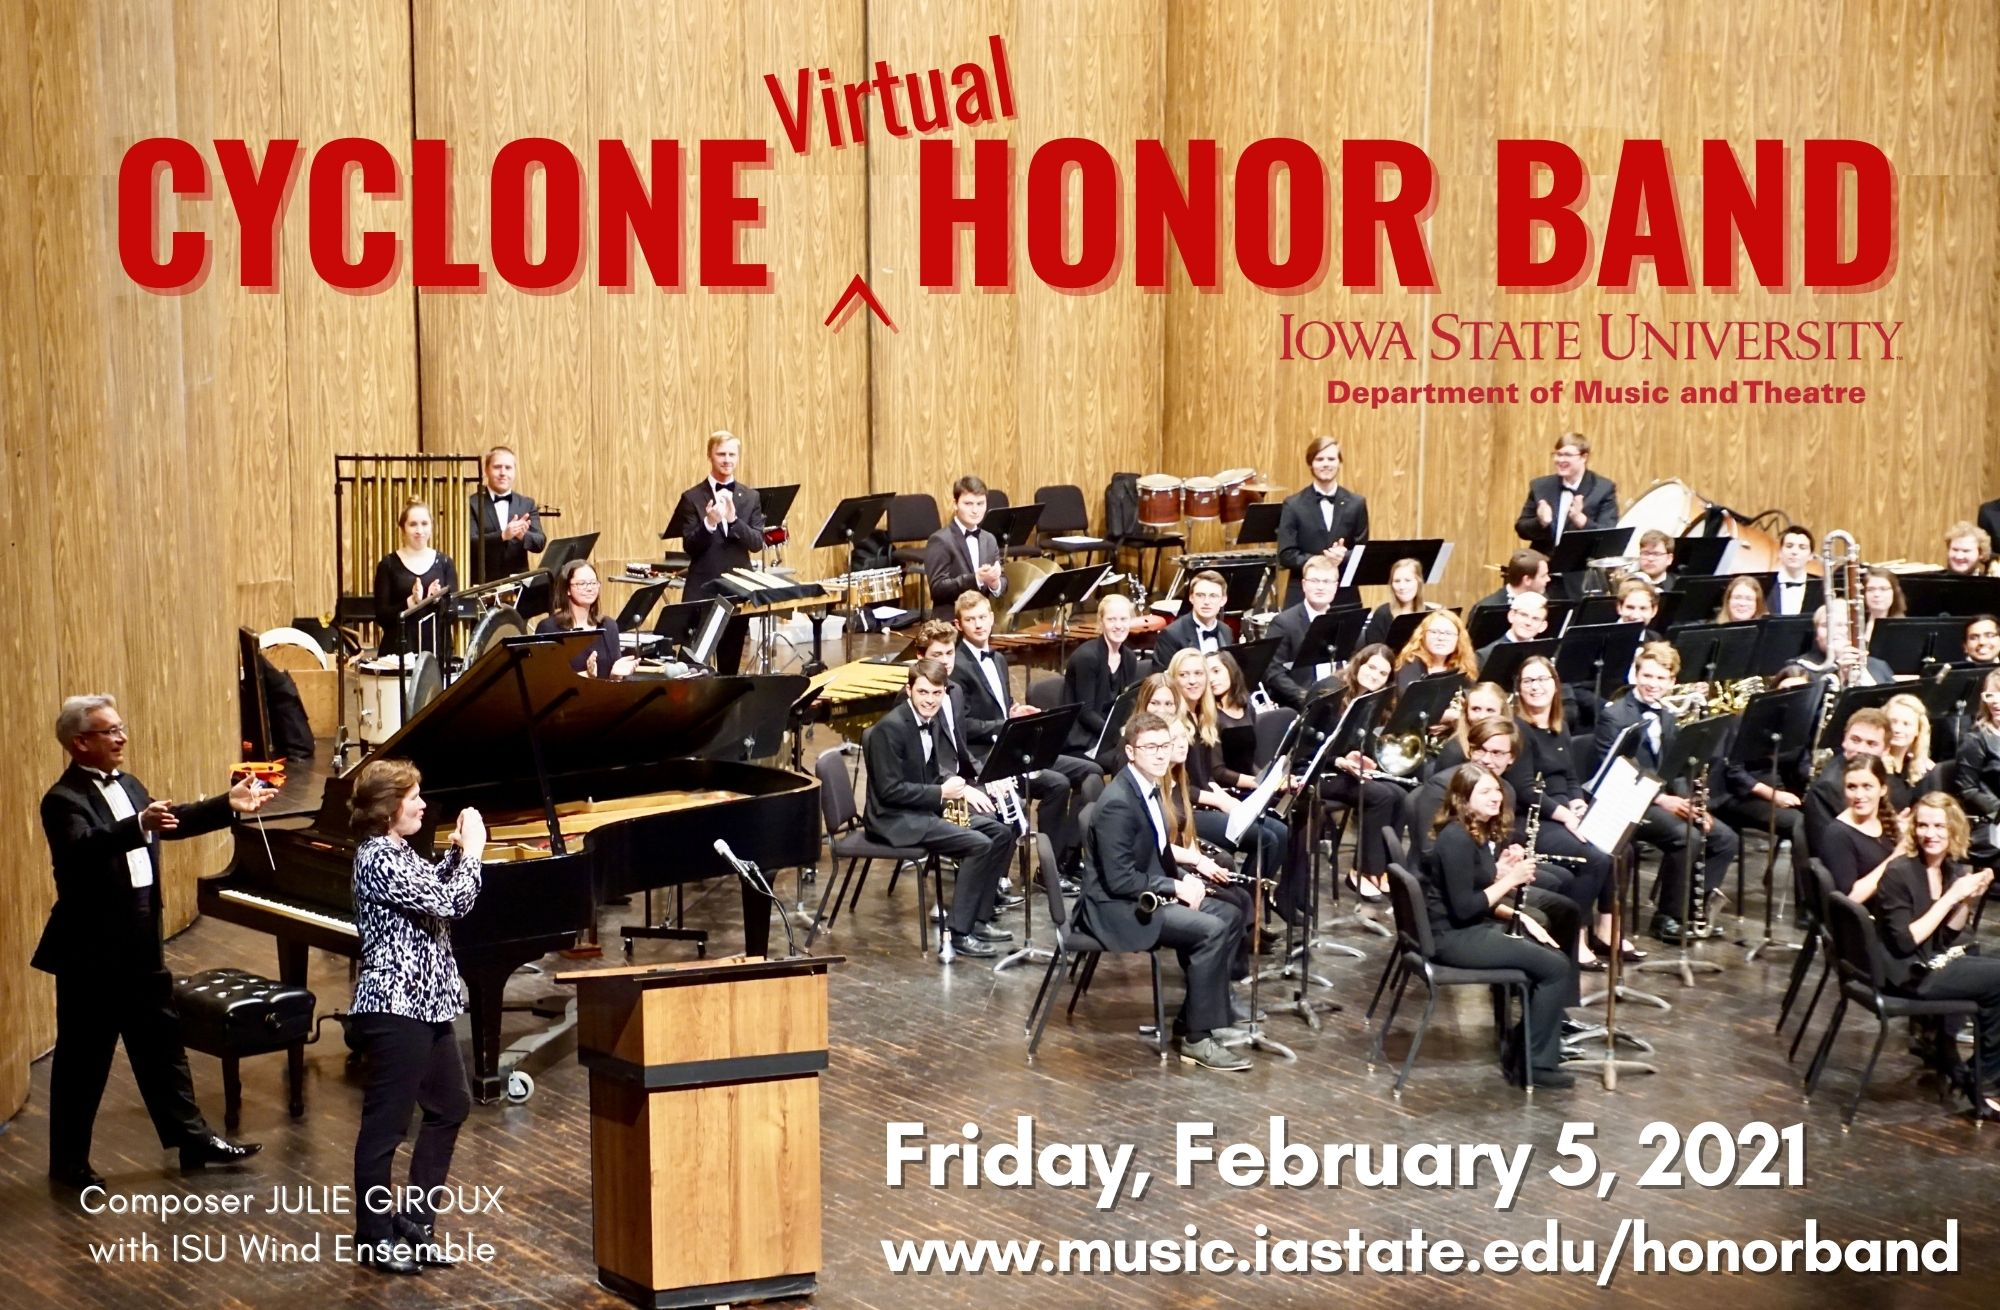 Cyclone Virtual Honor Band, Feb 5, 2021